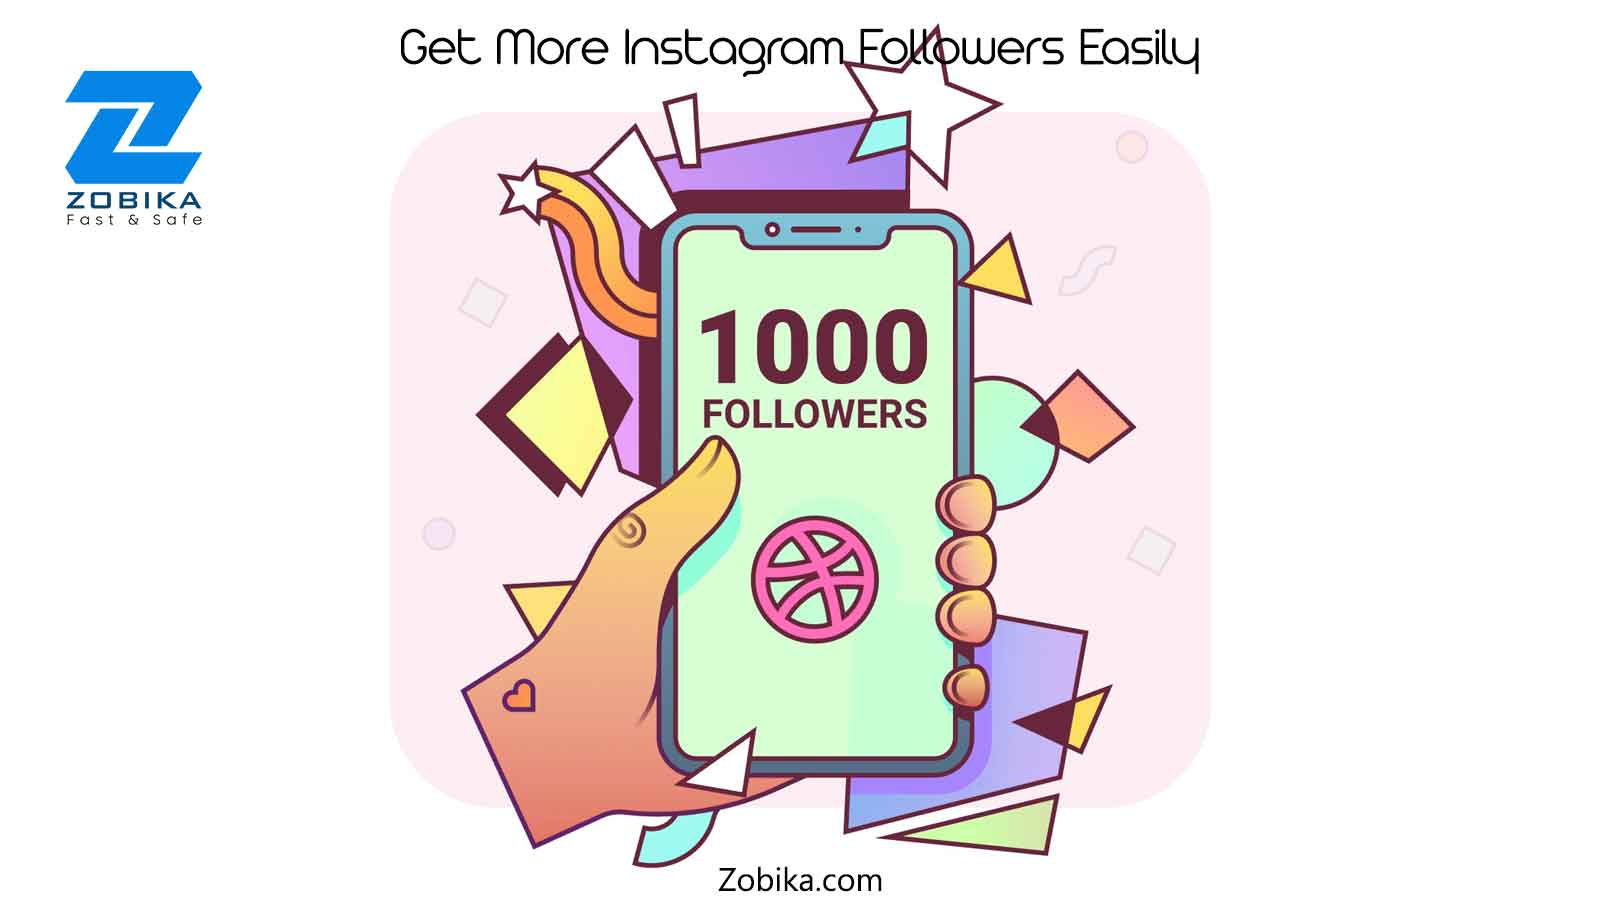 Get More Instagram Followers Easily